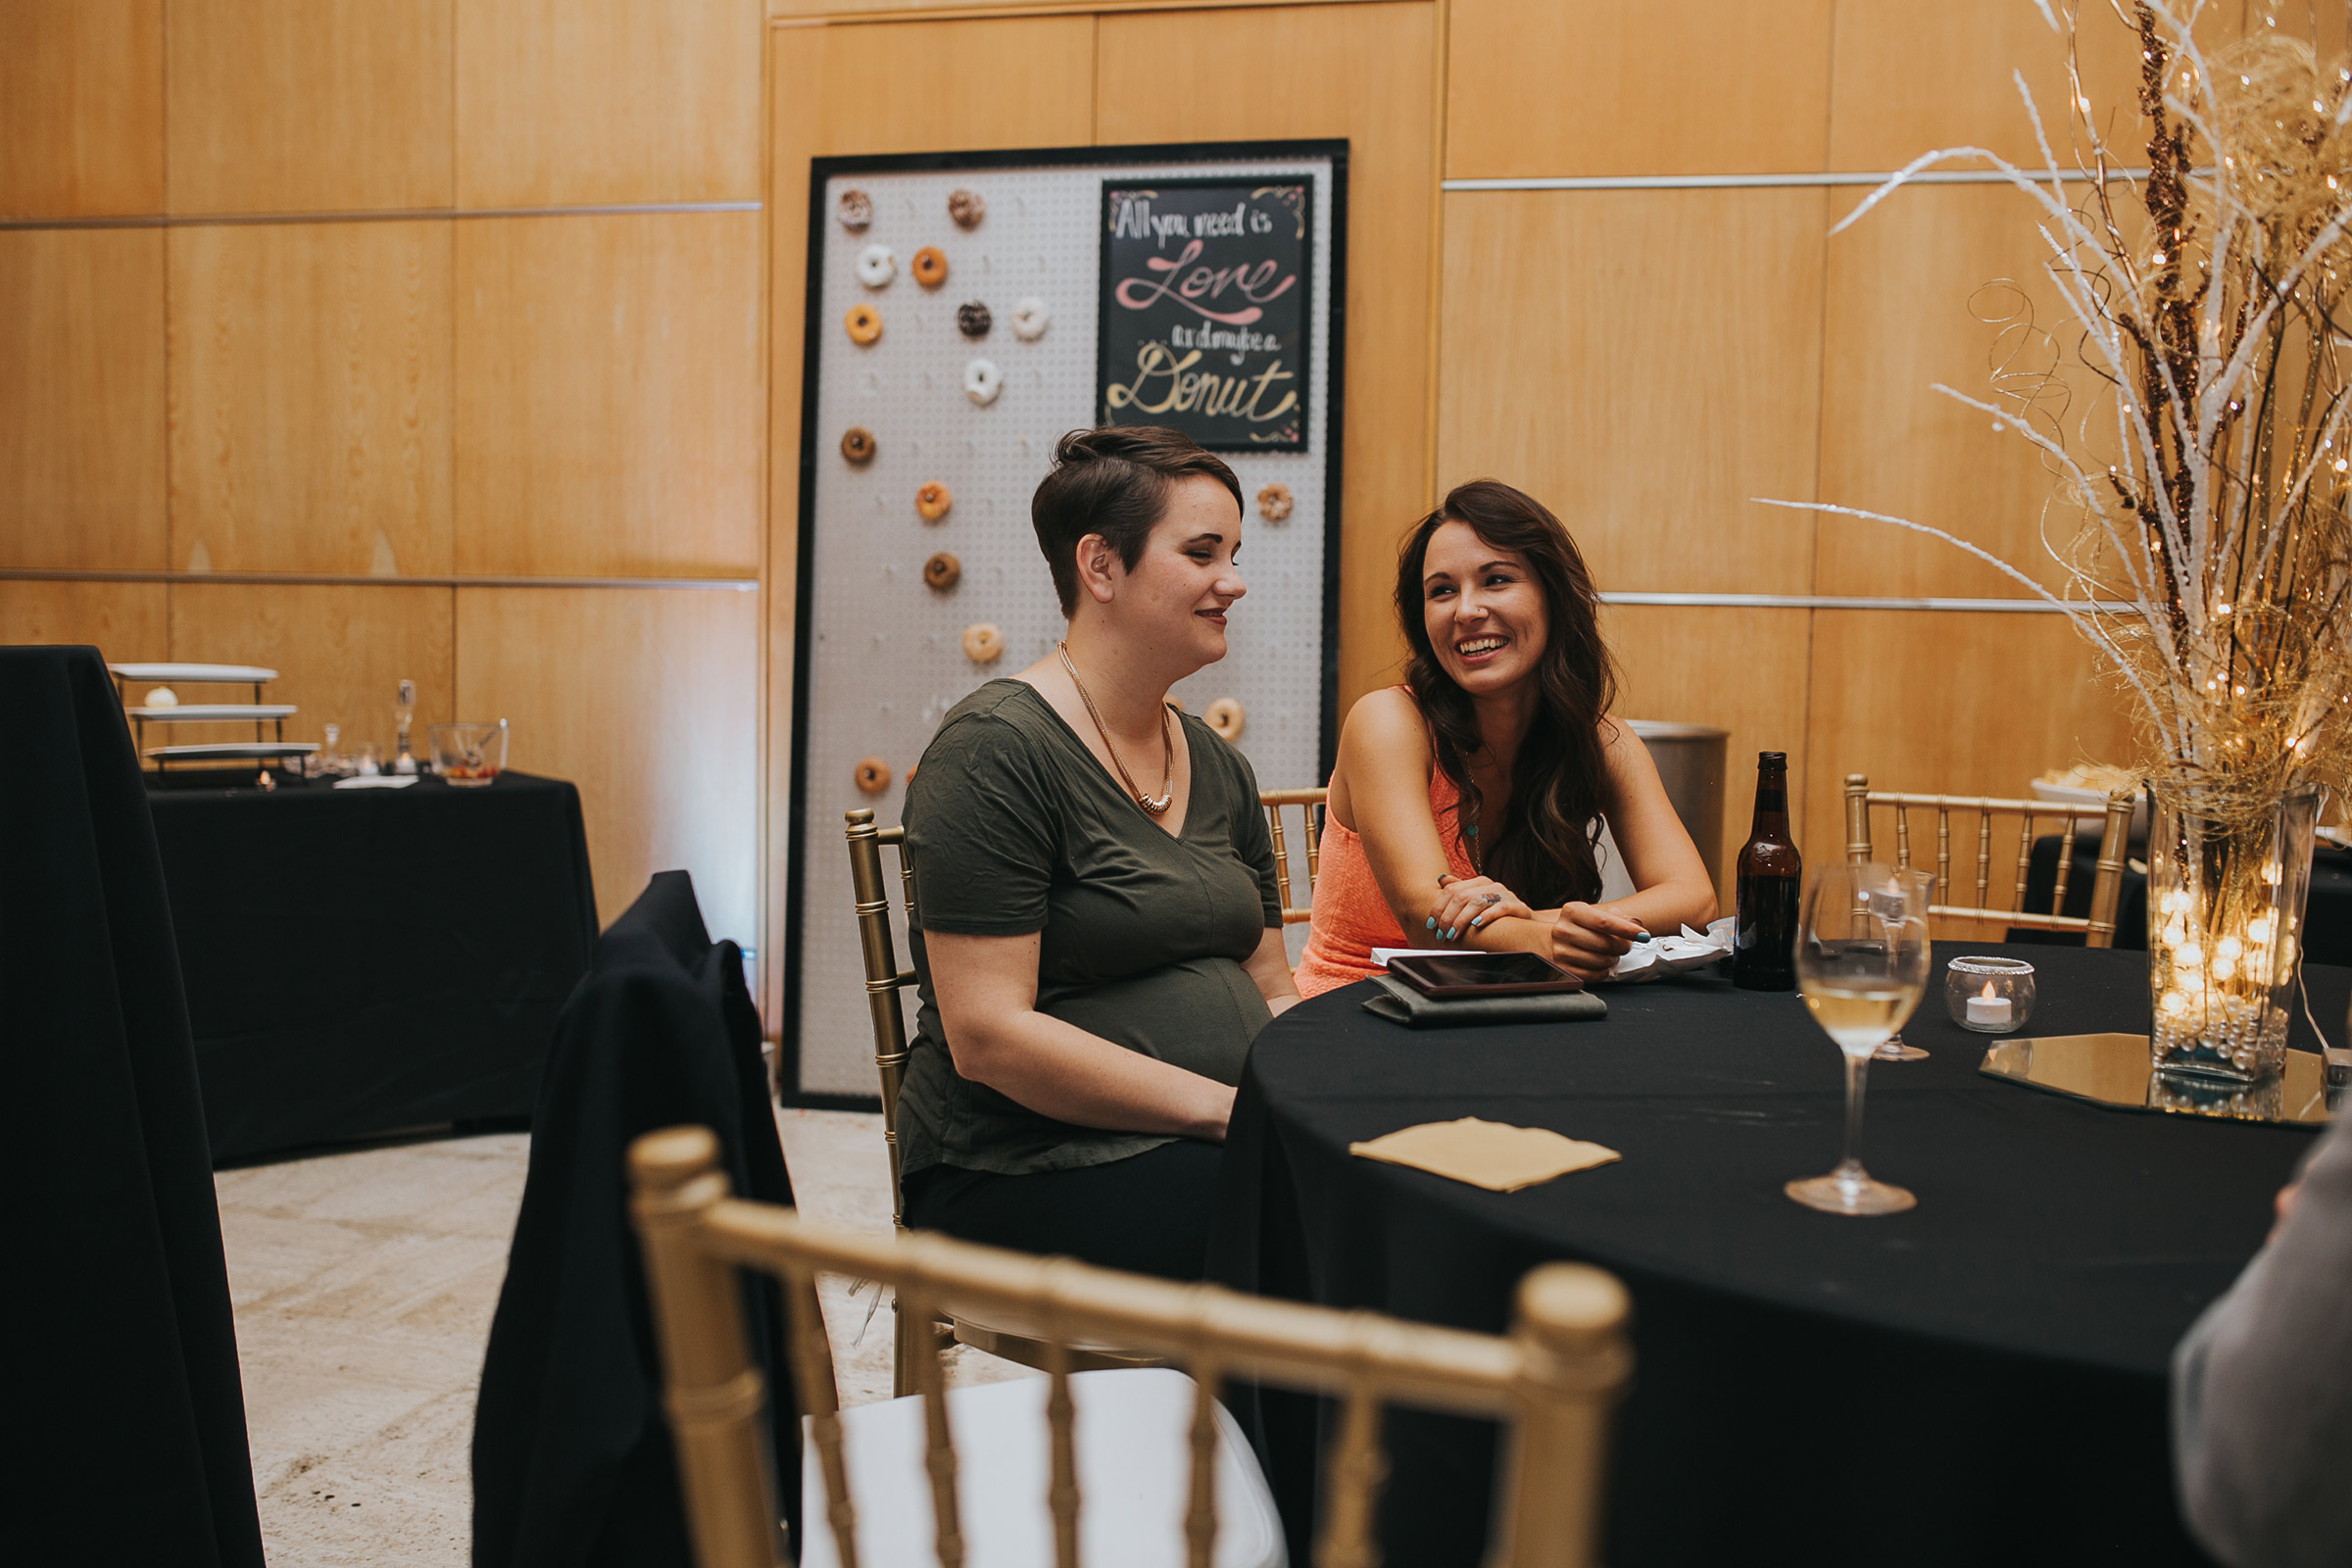 guest-laughing-and-talking-at-table-desmoines-iowa-art-center-raelyn-ramey-photography.jpg